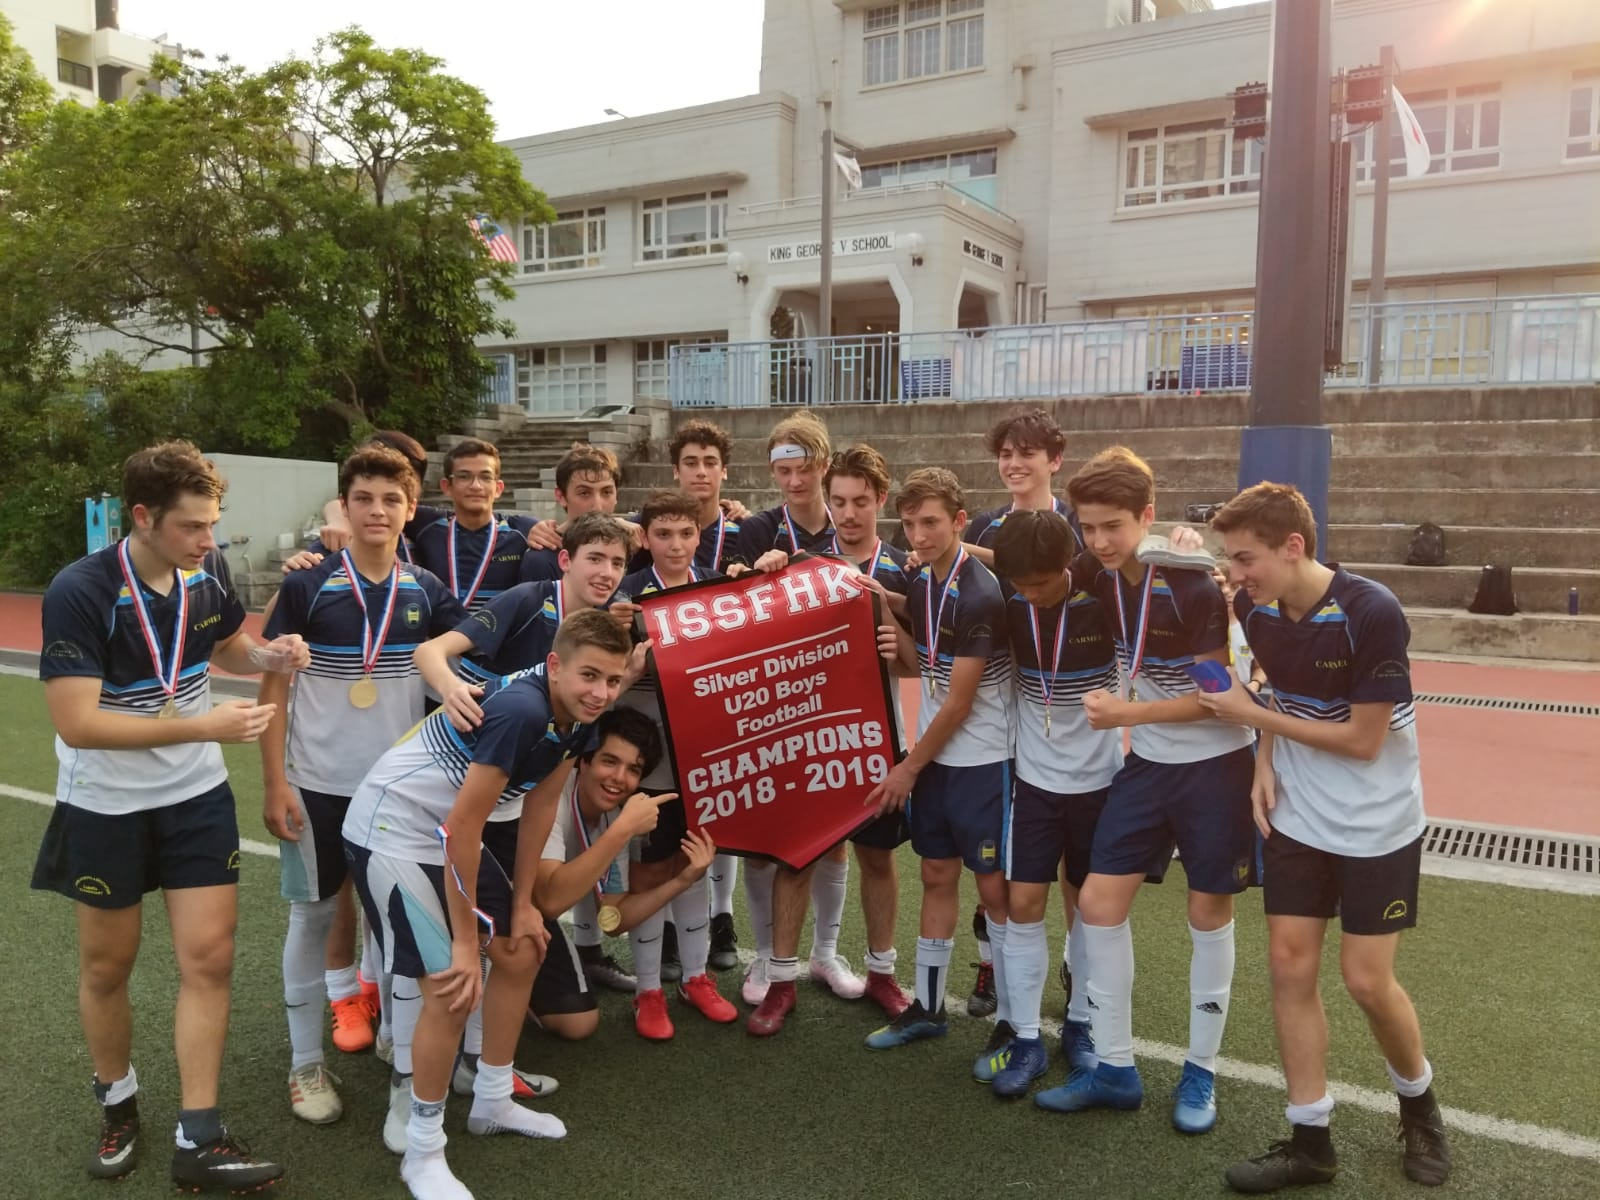 U20 Football team win ISSFHK Division Championship